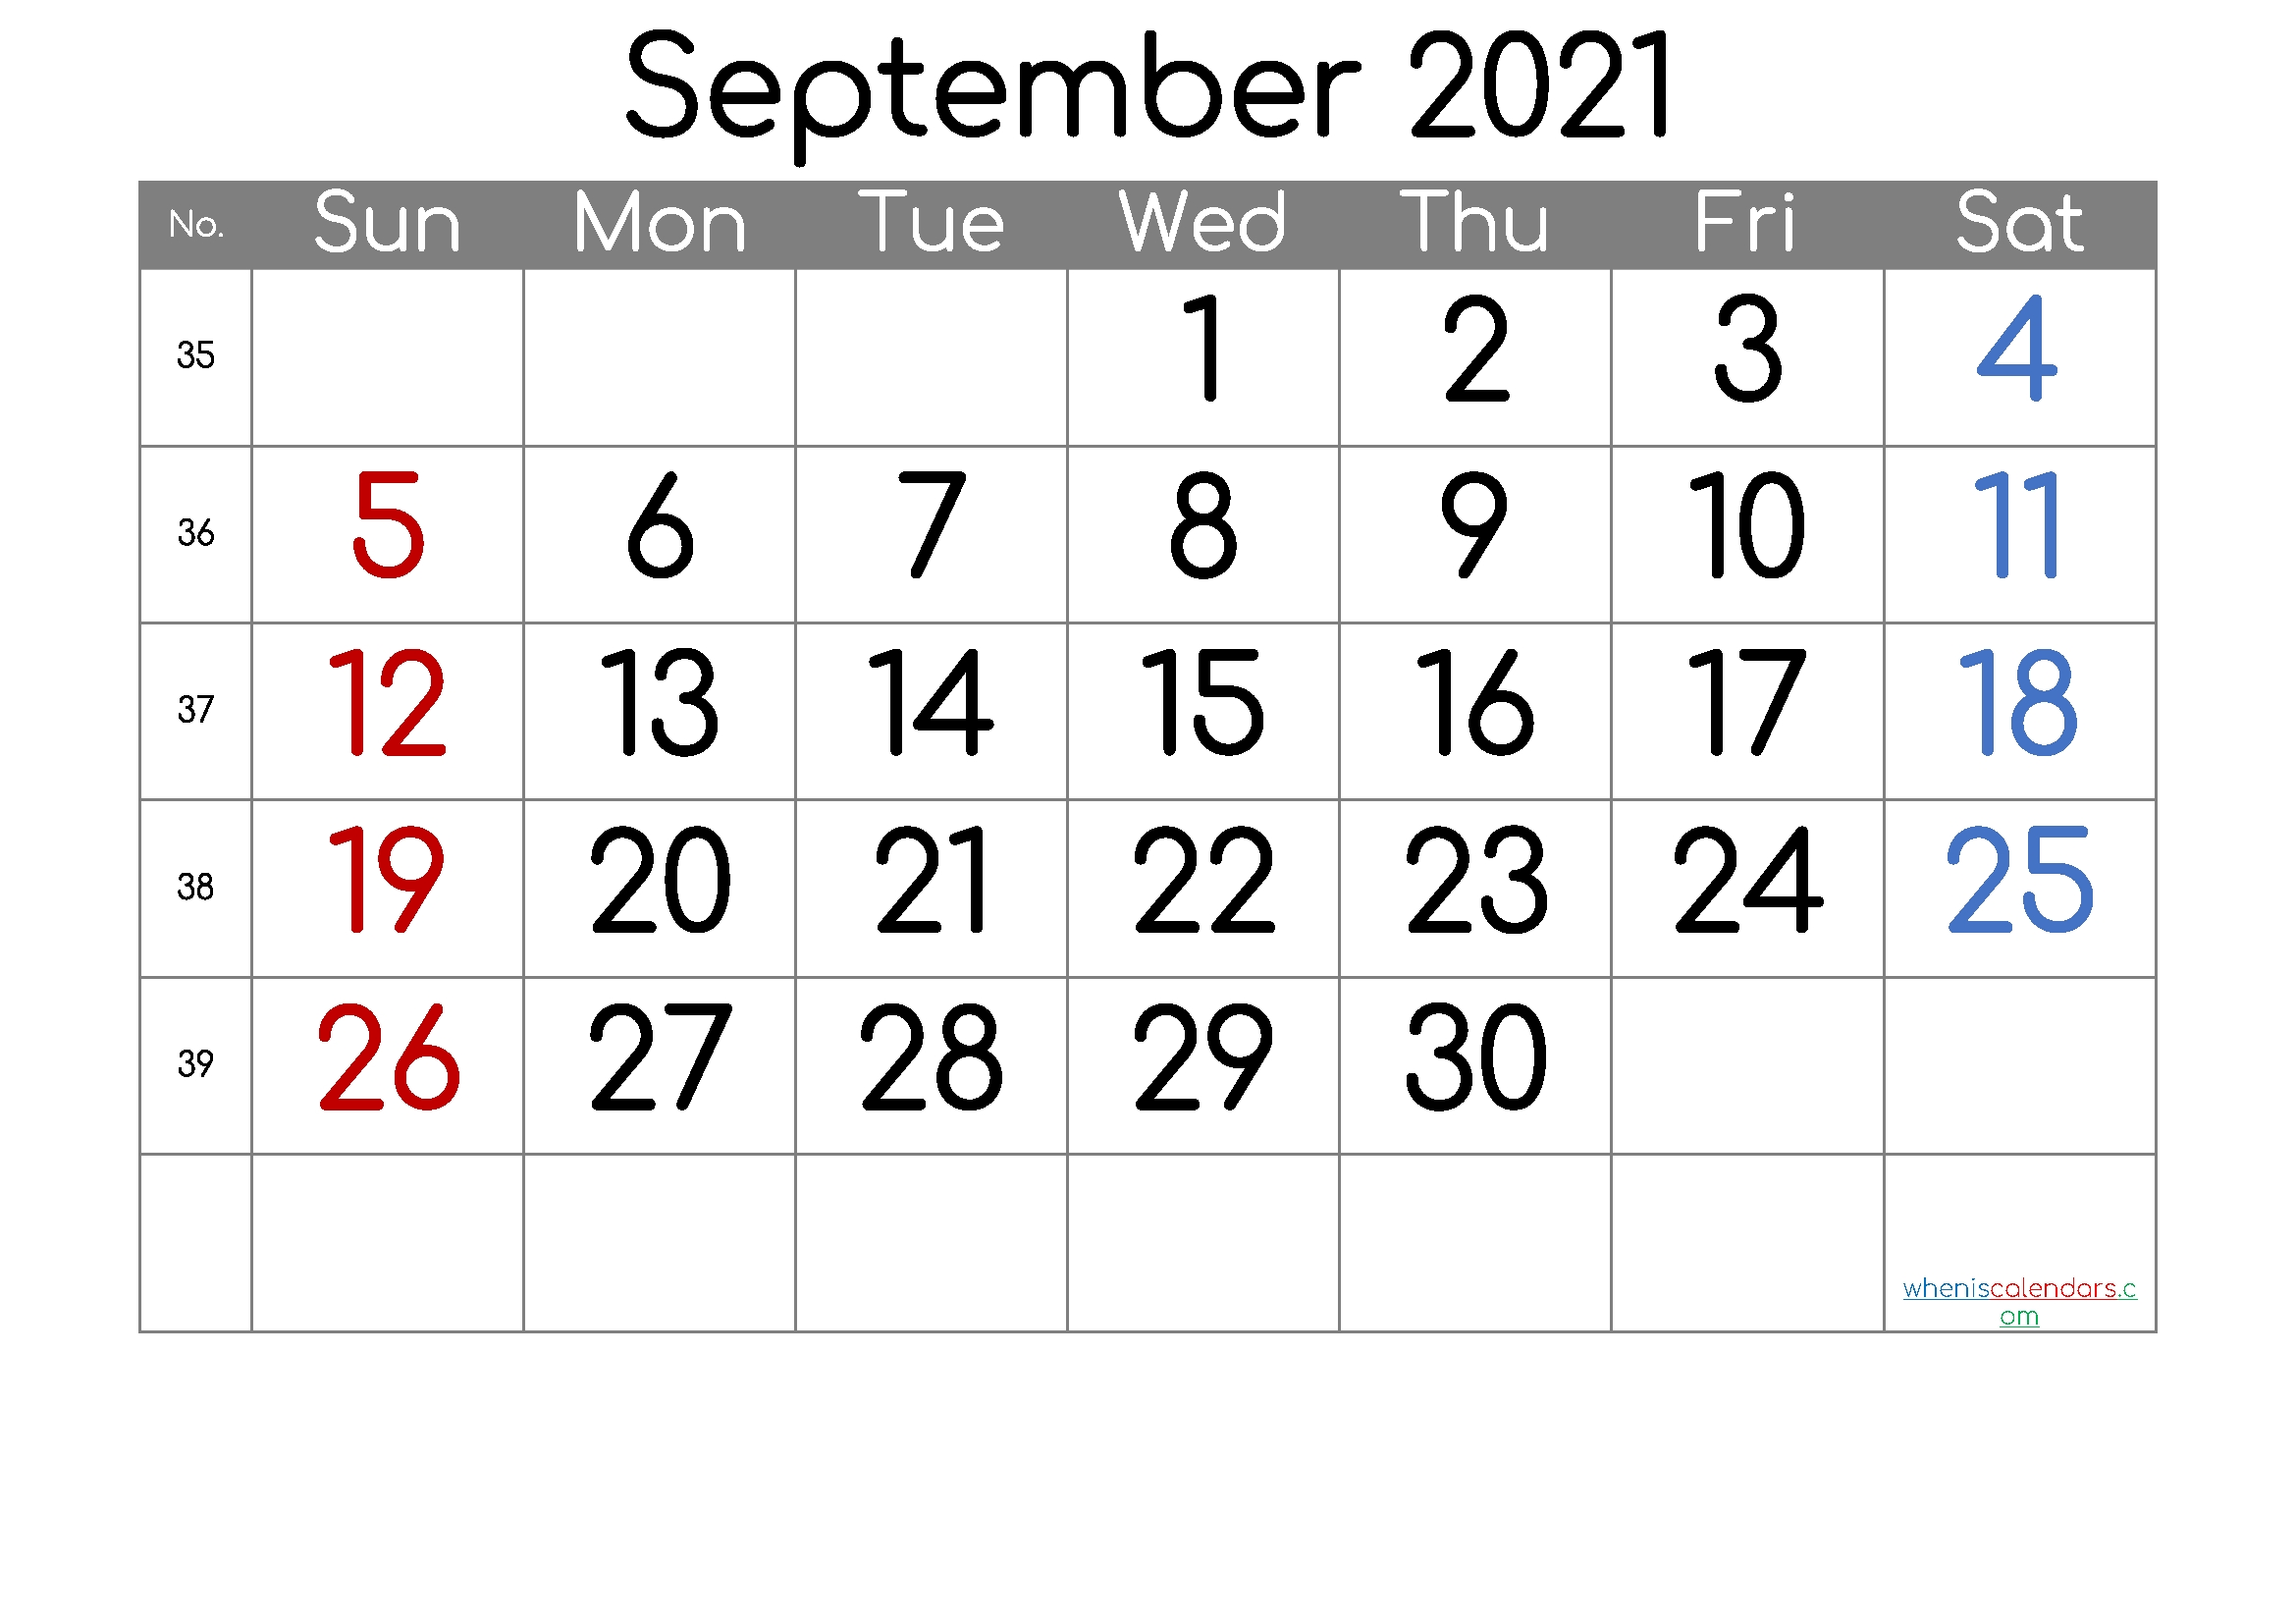 September 2021 Printable Calendar [Free Premium] In 2020 | Calendar With Week Numbers, Printable-Sepetember 2021 Calendar With Big Numbers